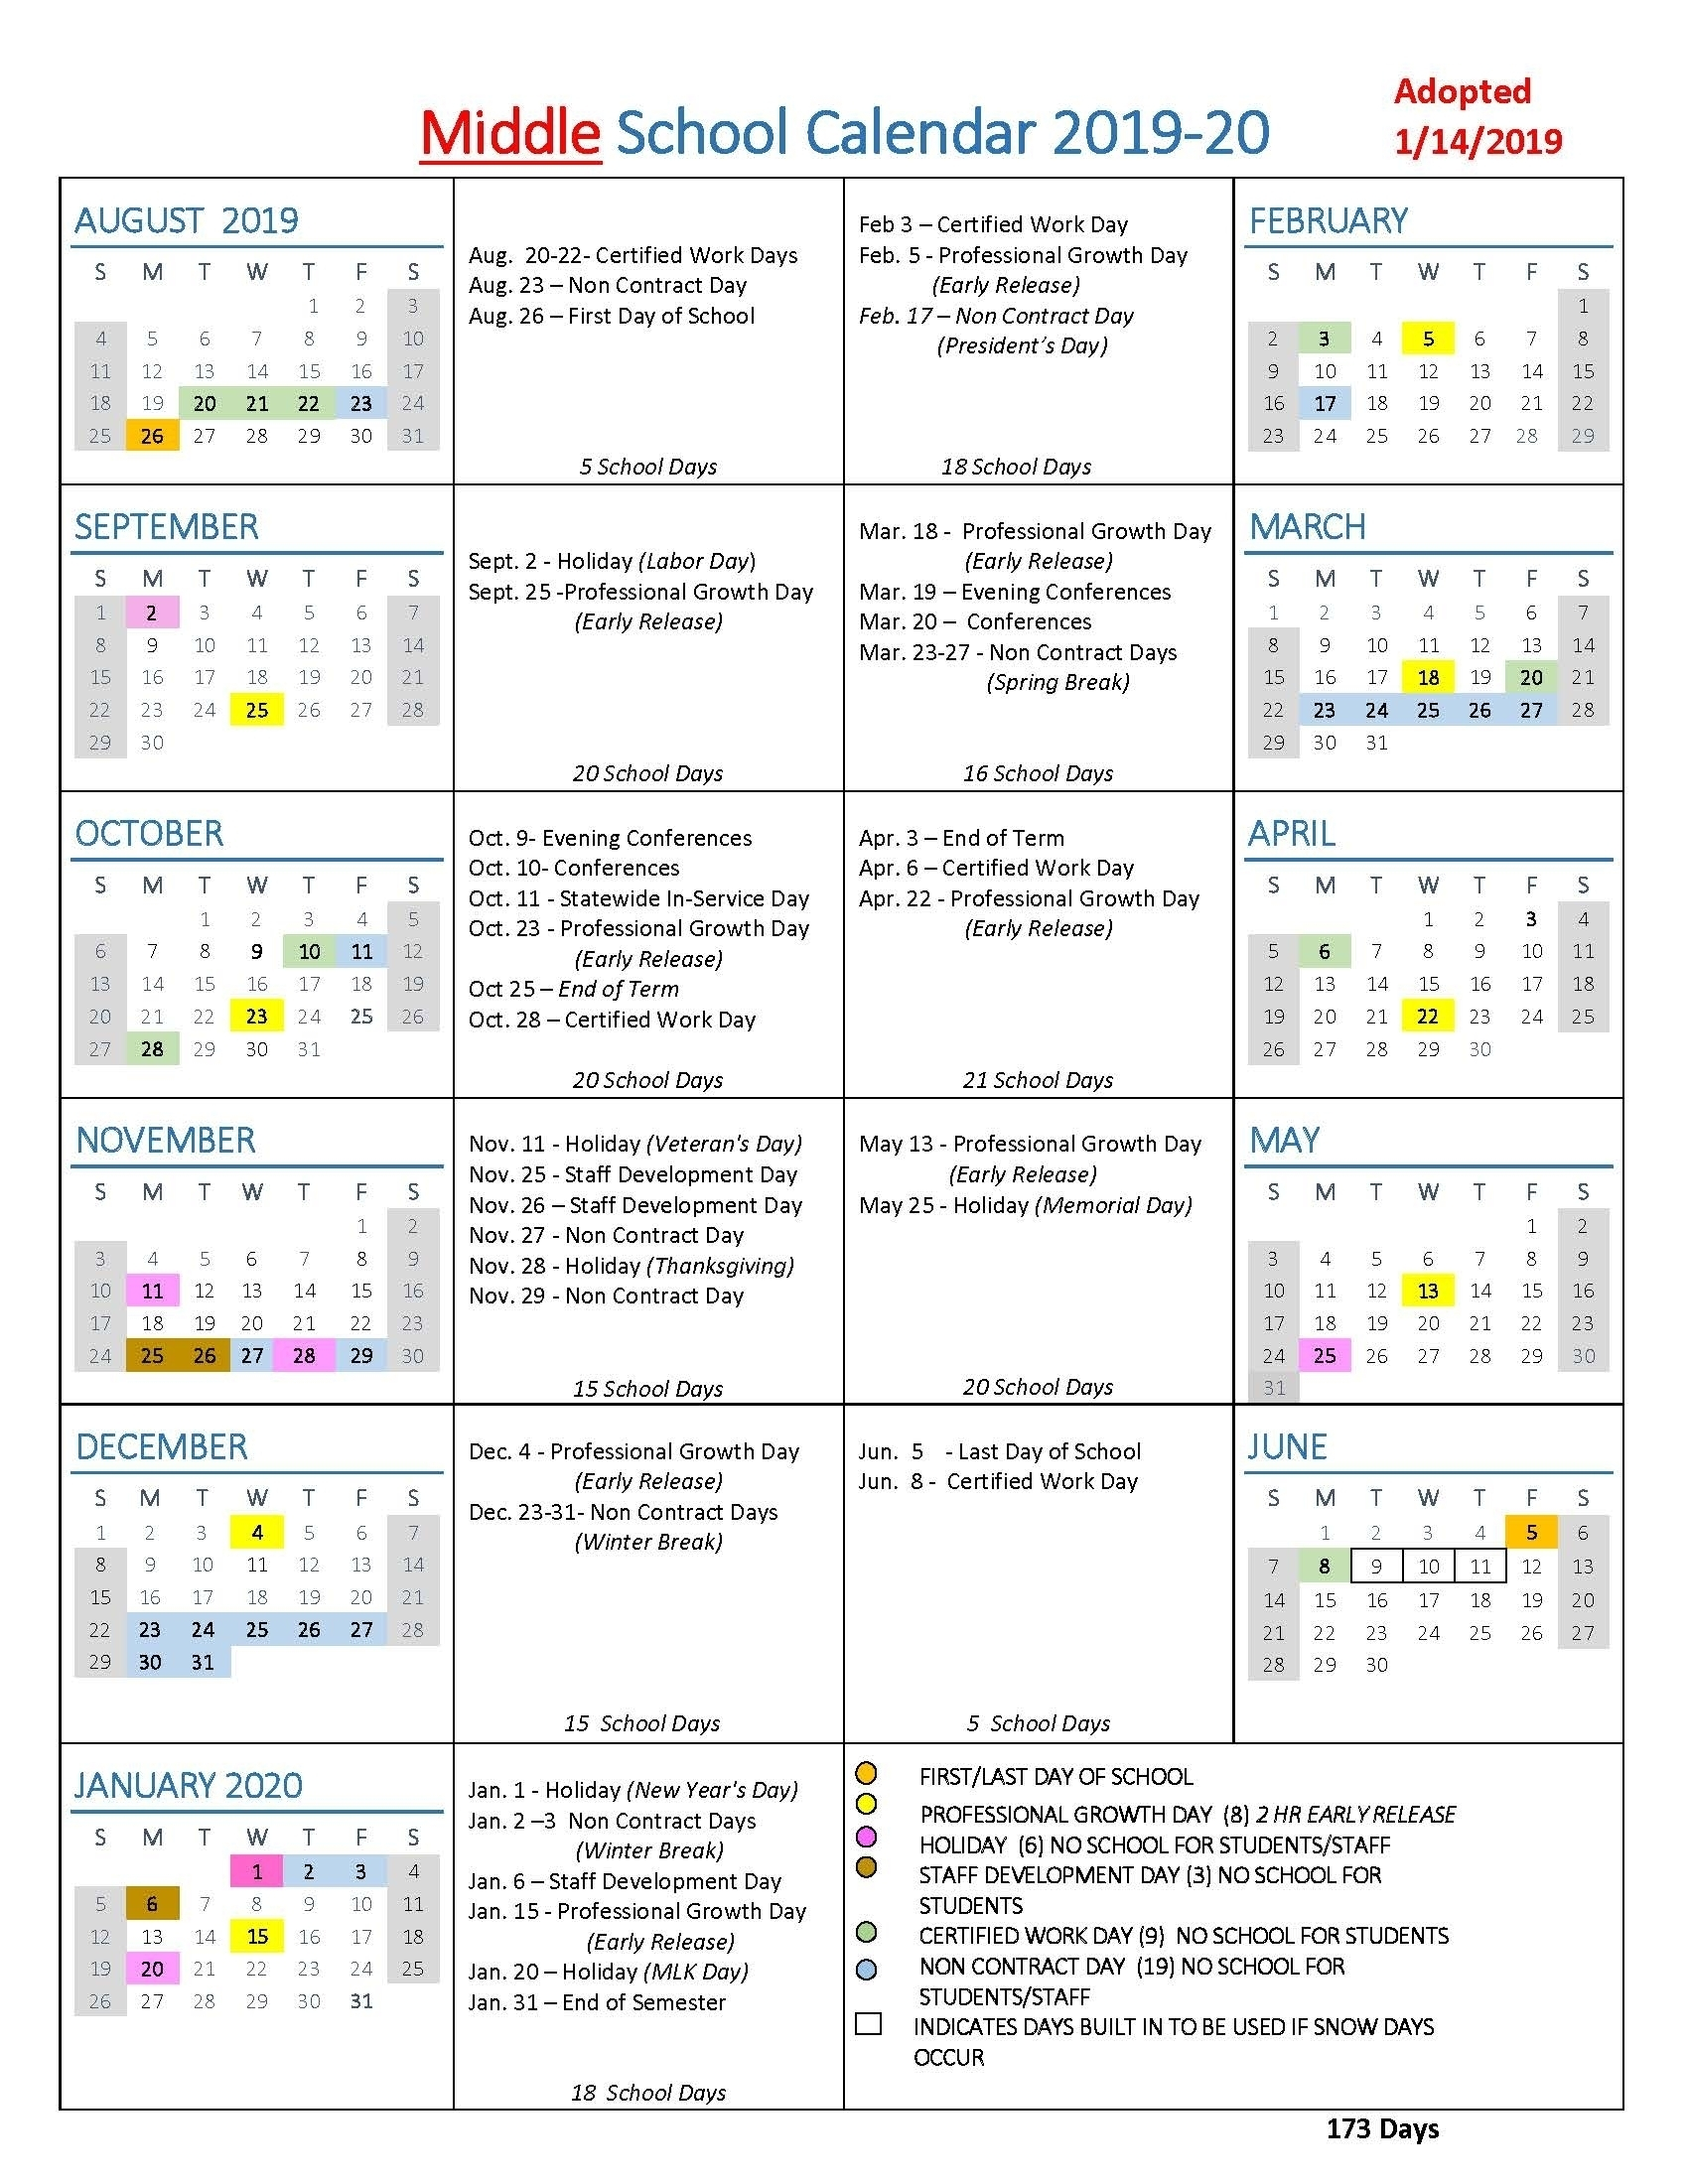 Calendar With All The Special Days In 2020 - Calendar with Special Calendar Days In 2020